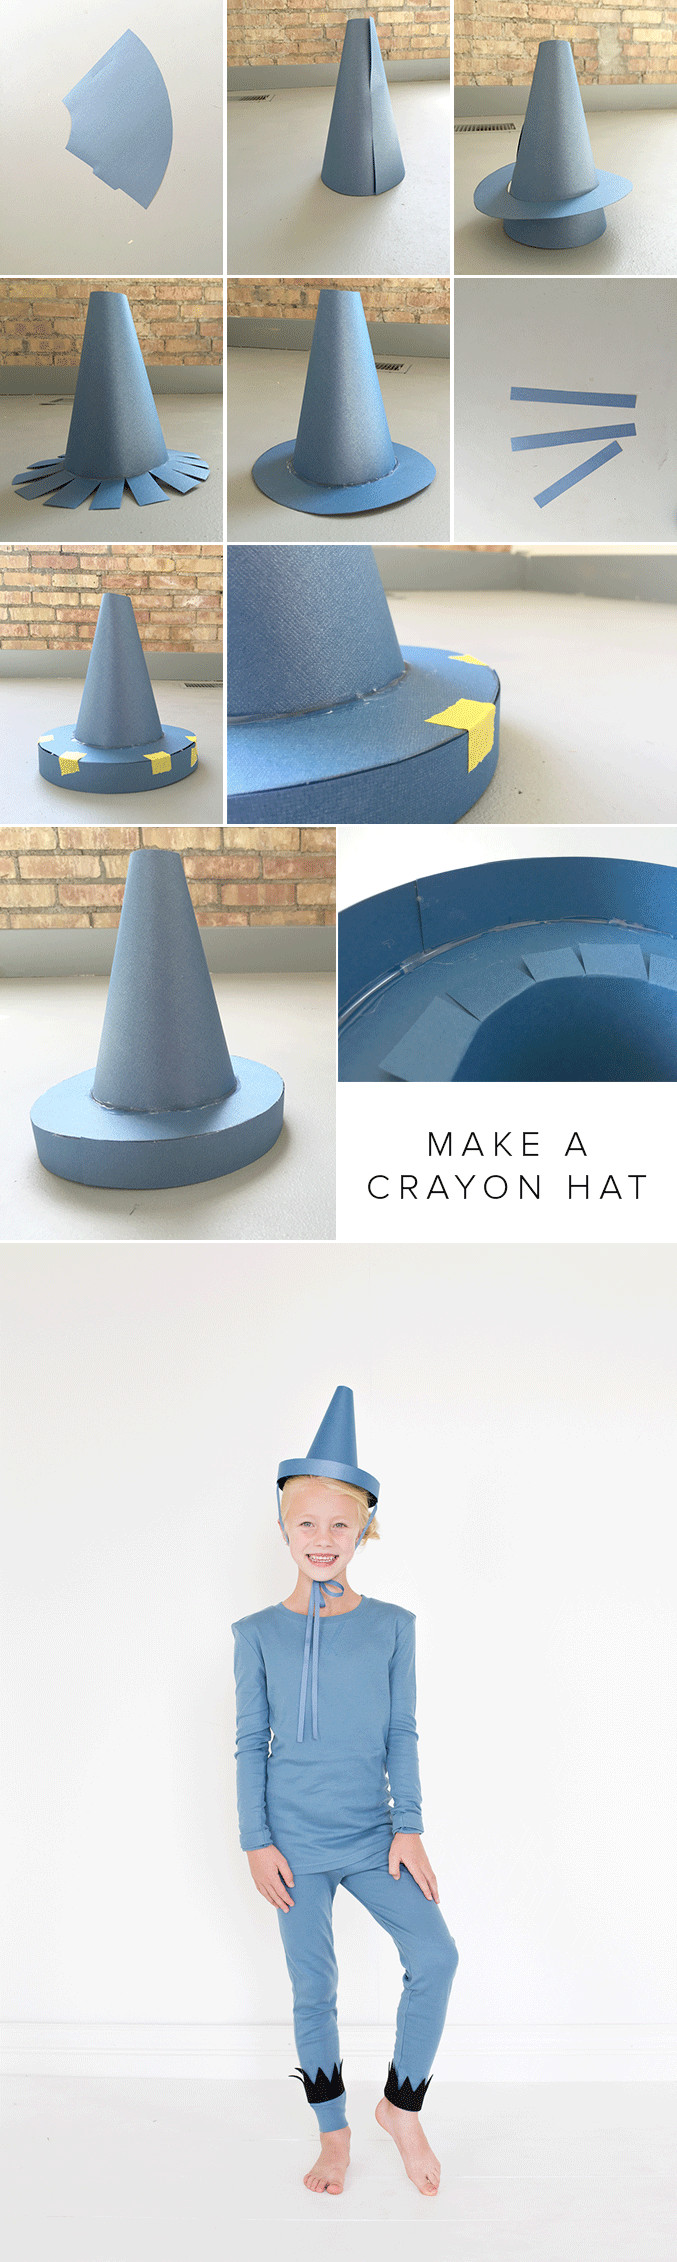 DIY Crayon Costume  The Day the Crayons Quit costumes school days